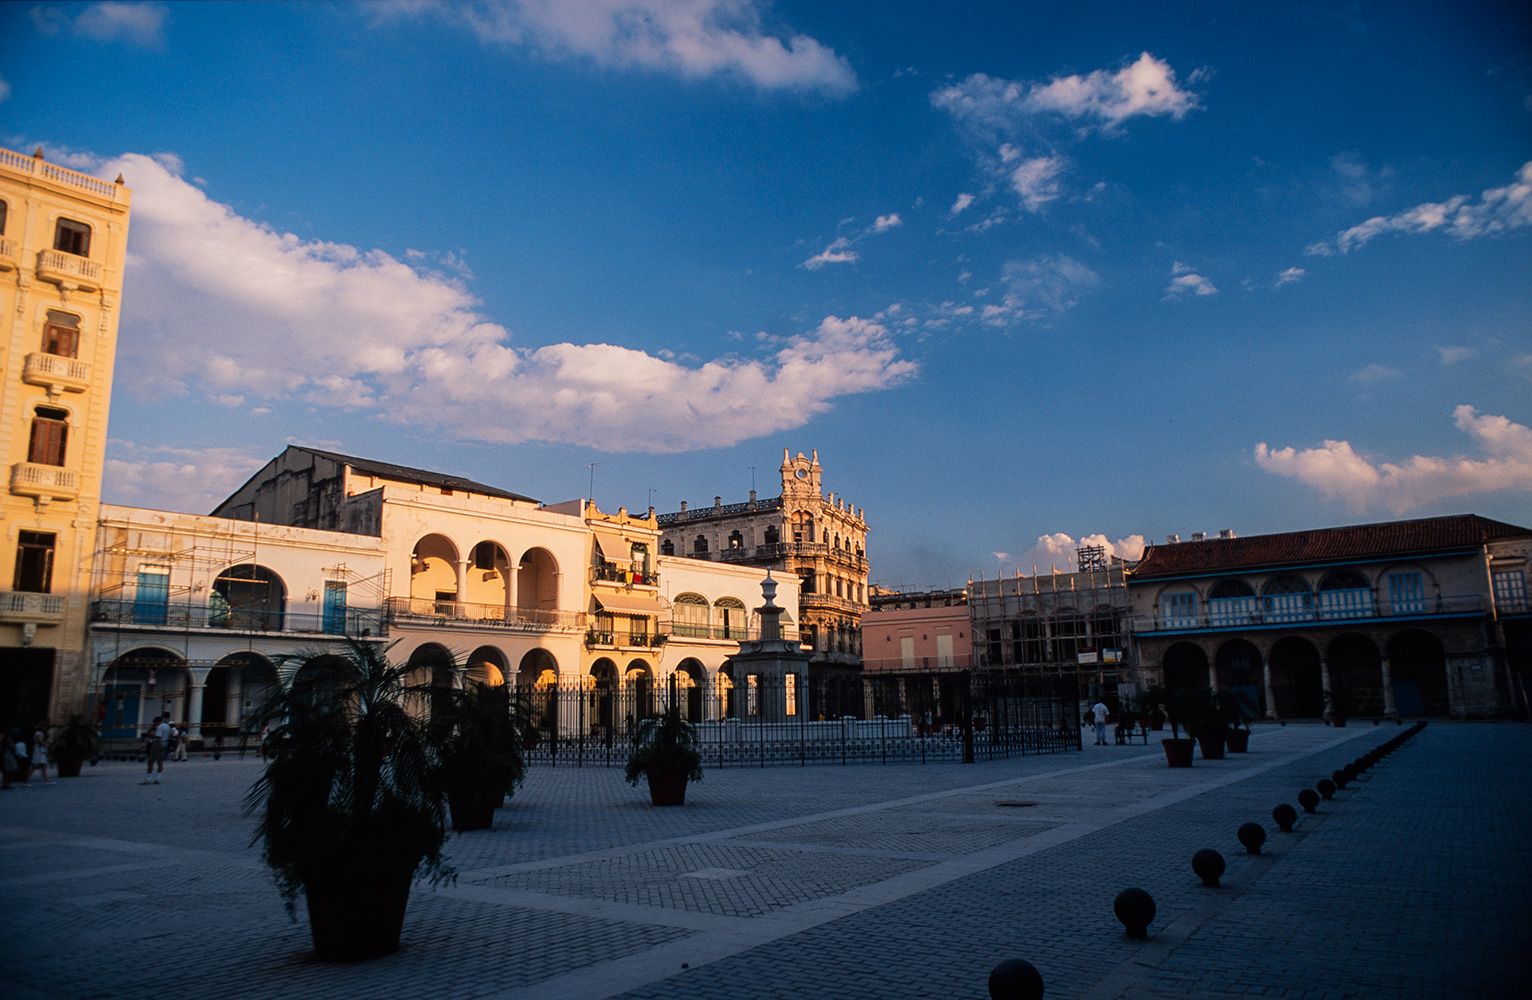 Another view of this stunning square.Nikon FM2, 24mm, Fuji Velvia